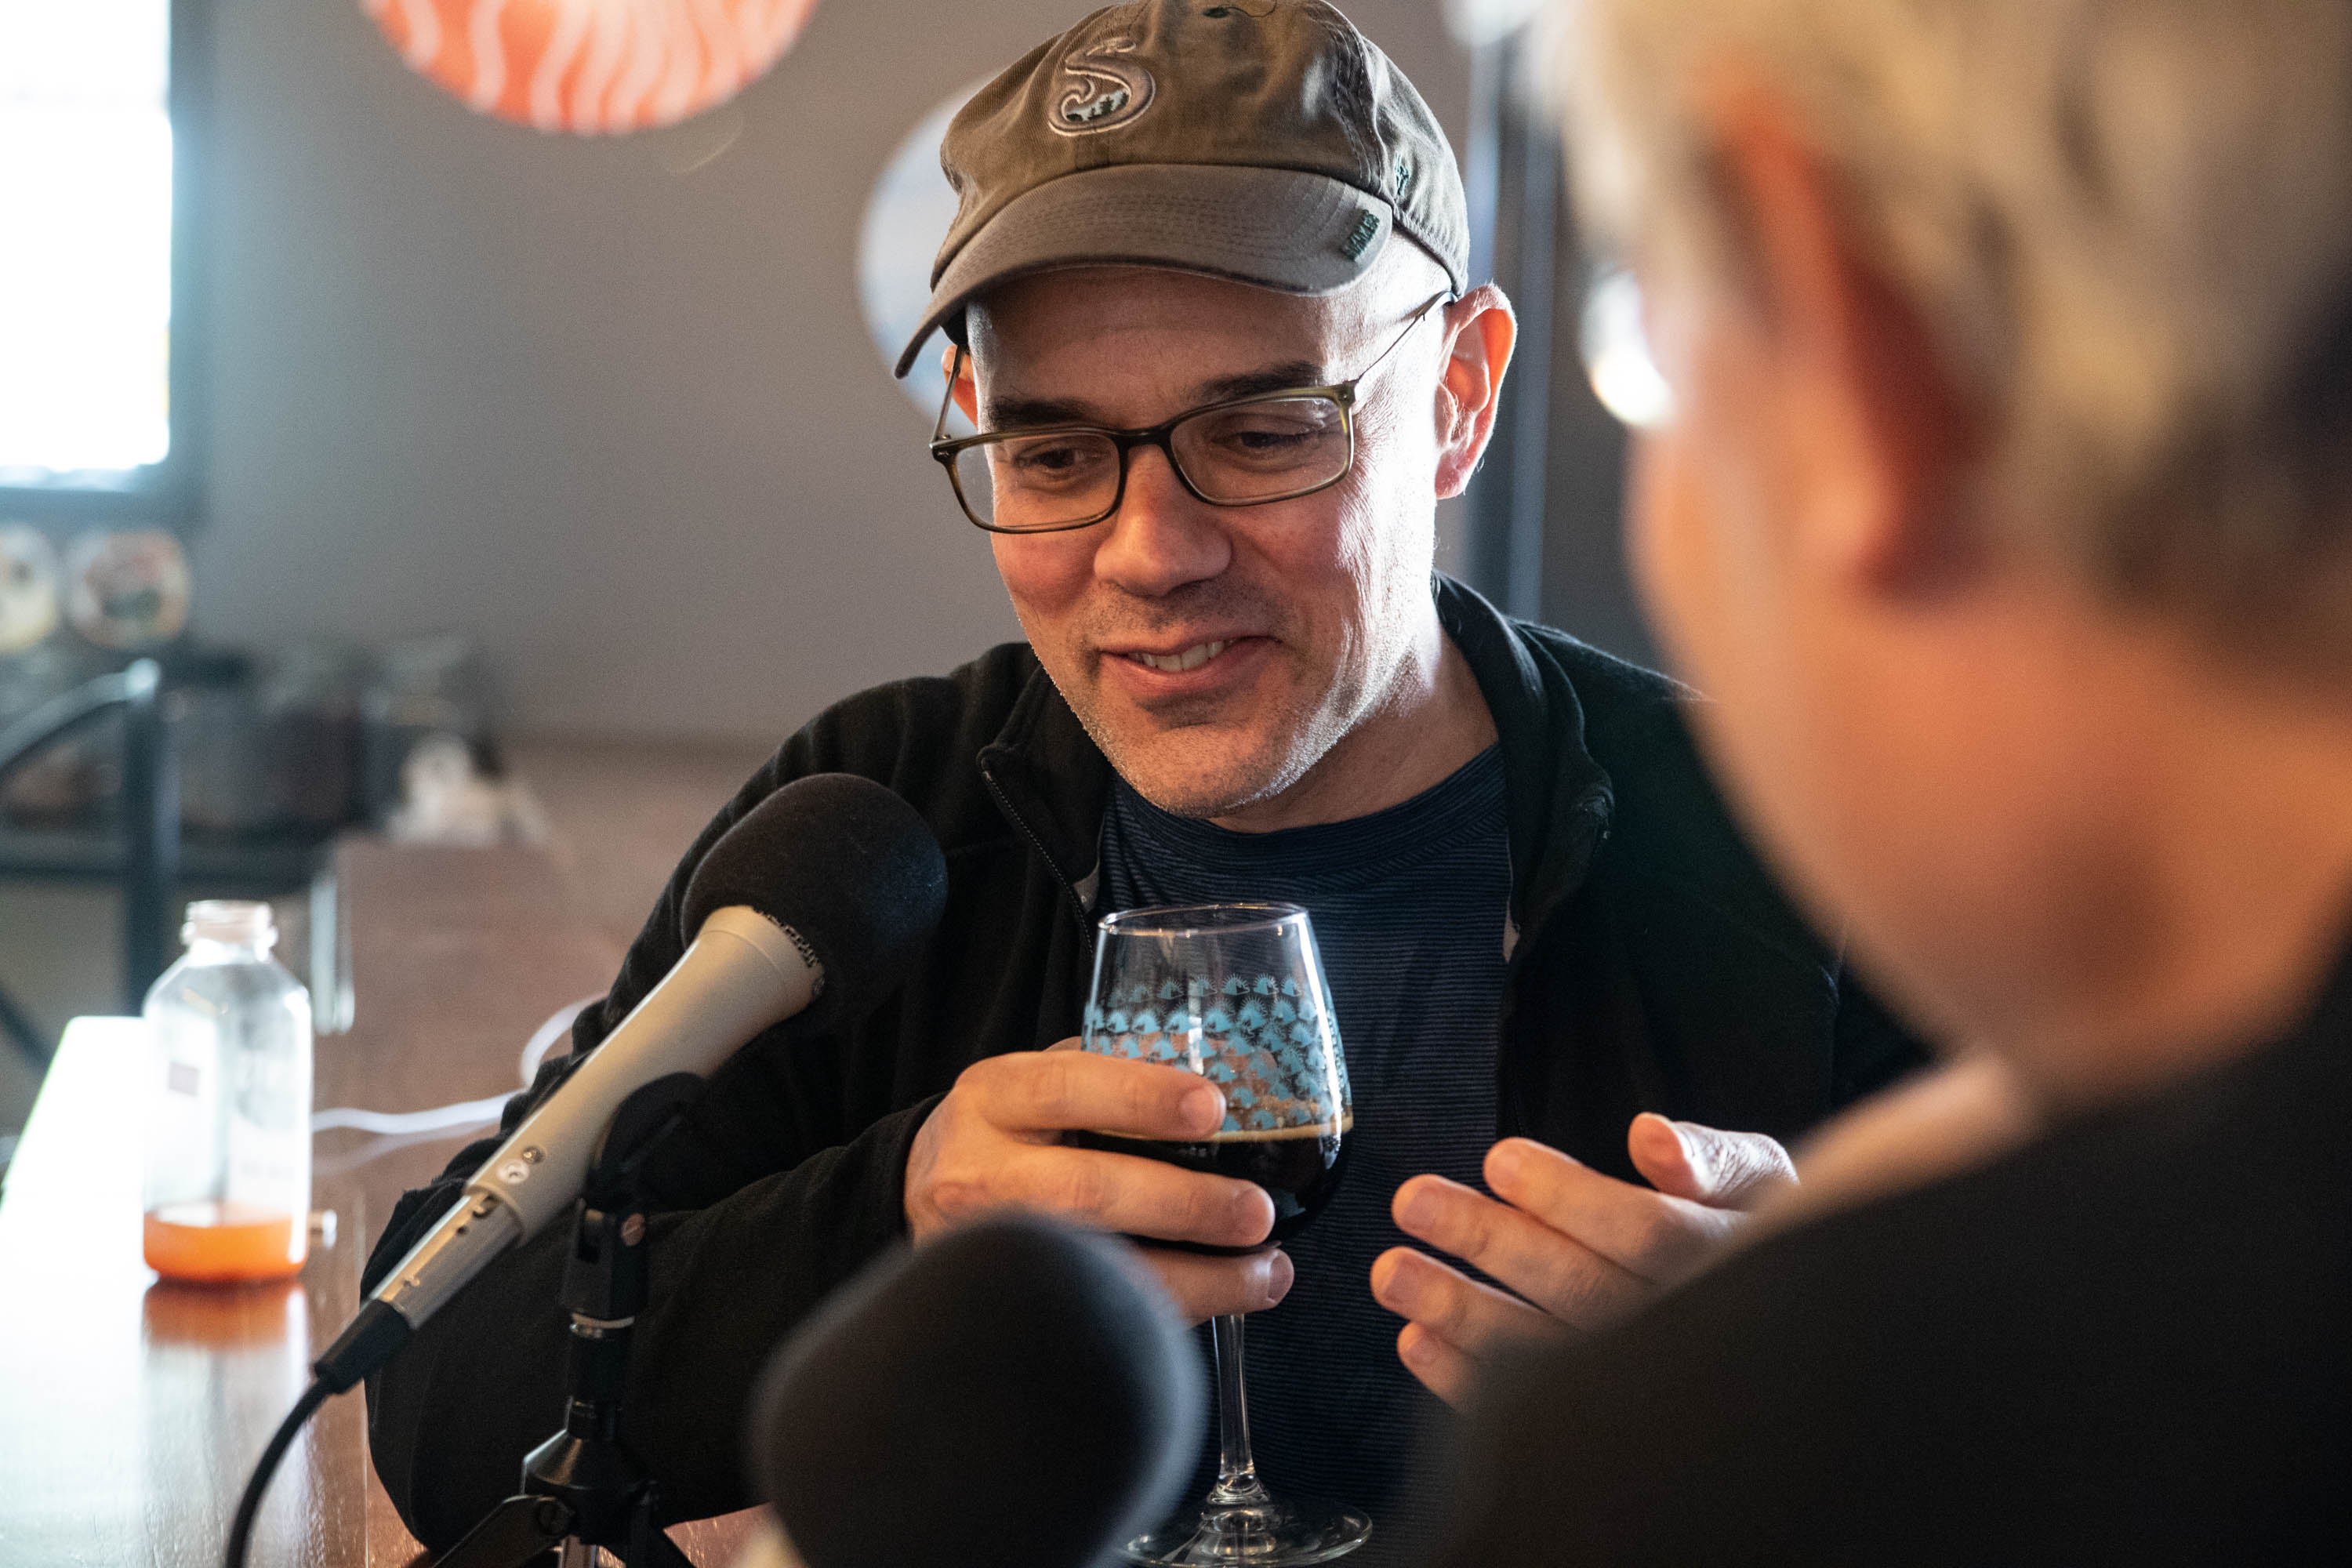 Josh Noel demonstrates his tasting technique while sampling Goose Island Bourbon County Brand Stout (2014 and 2017) at the Funk Factory Geuzeria in Madison, Wisconsin. <em>Mark Riechers (TTBOOK)</em>